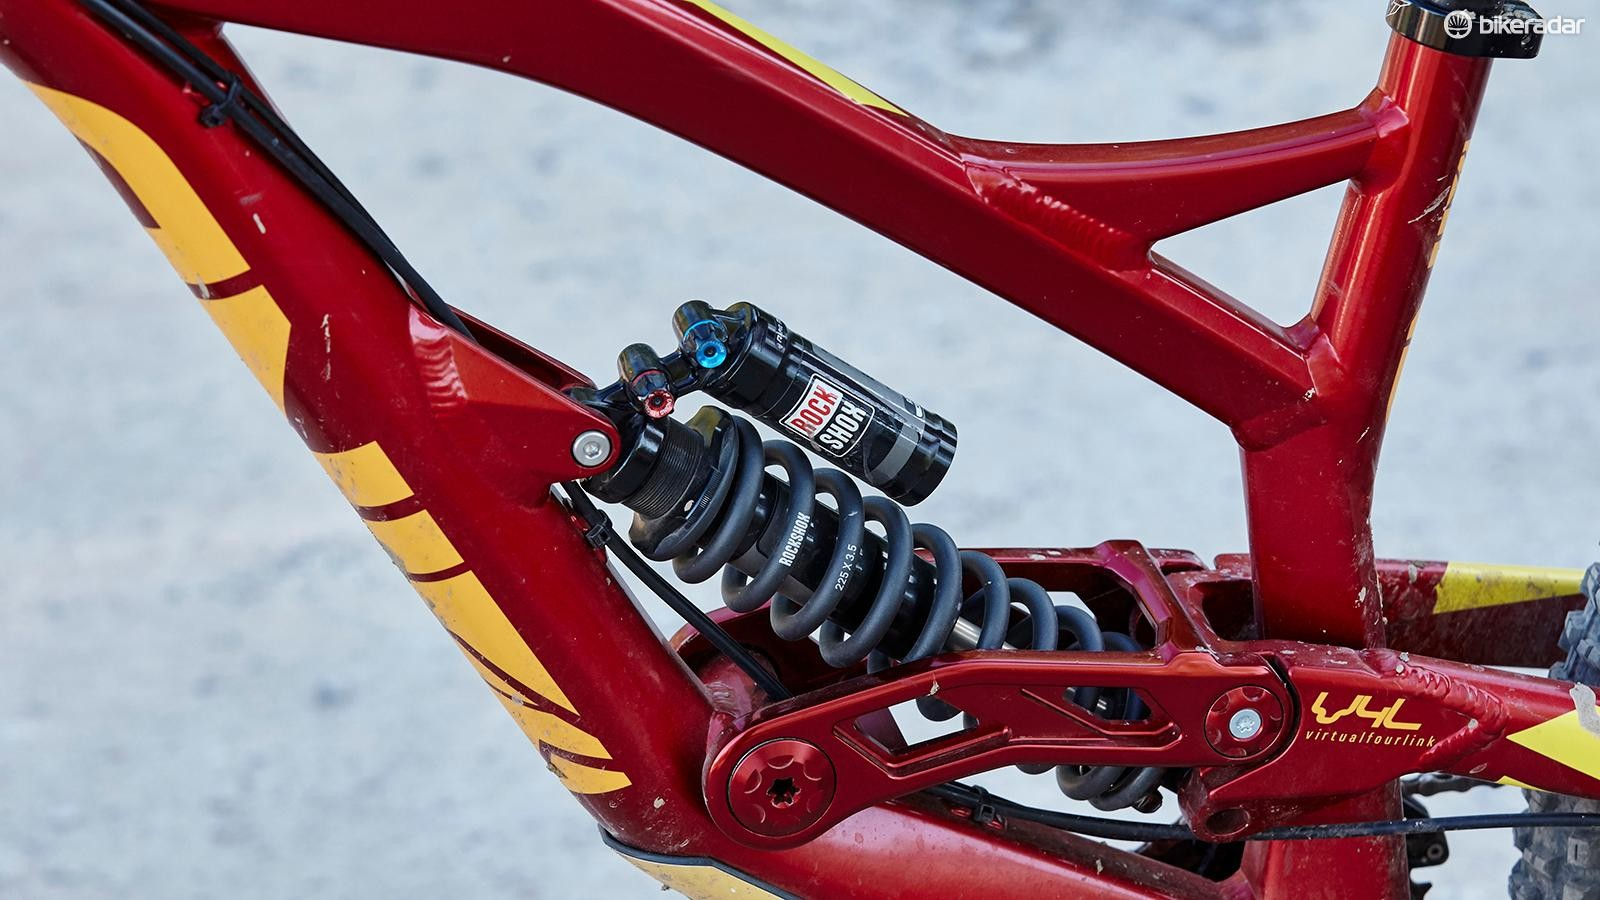 It's easy to get the Vivid R2C shock tweaked to your requirements – though it's not ideal for the lightest riders